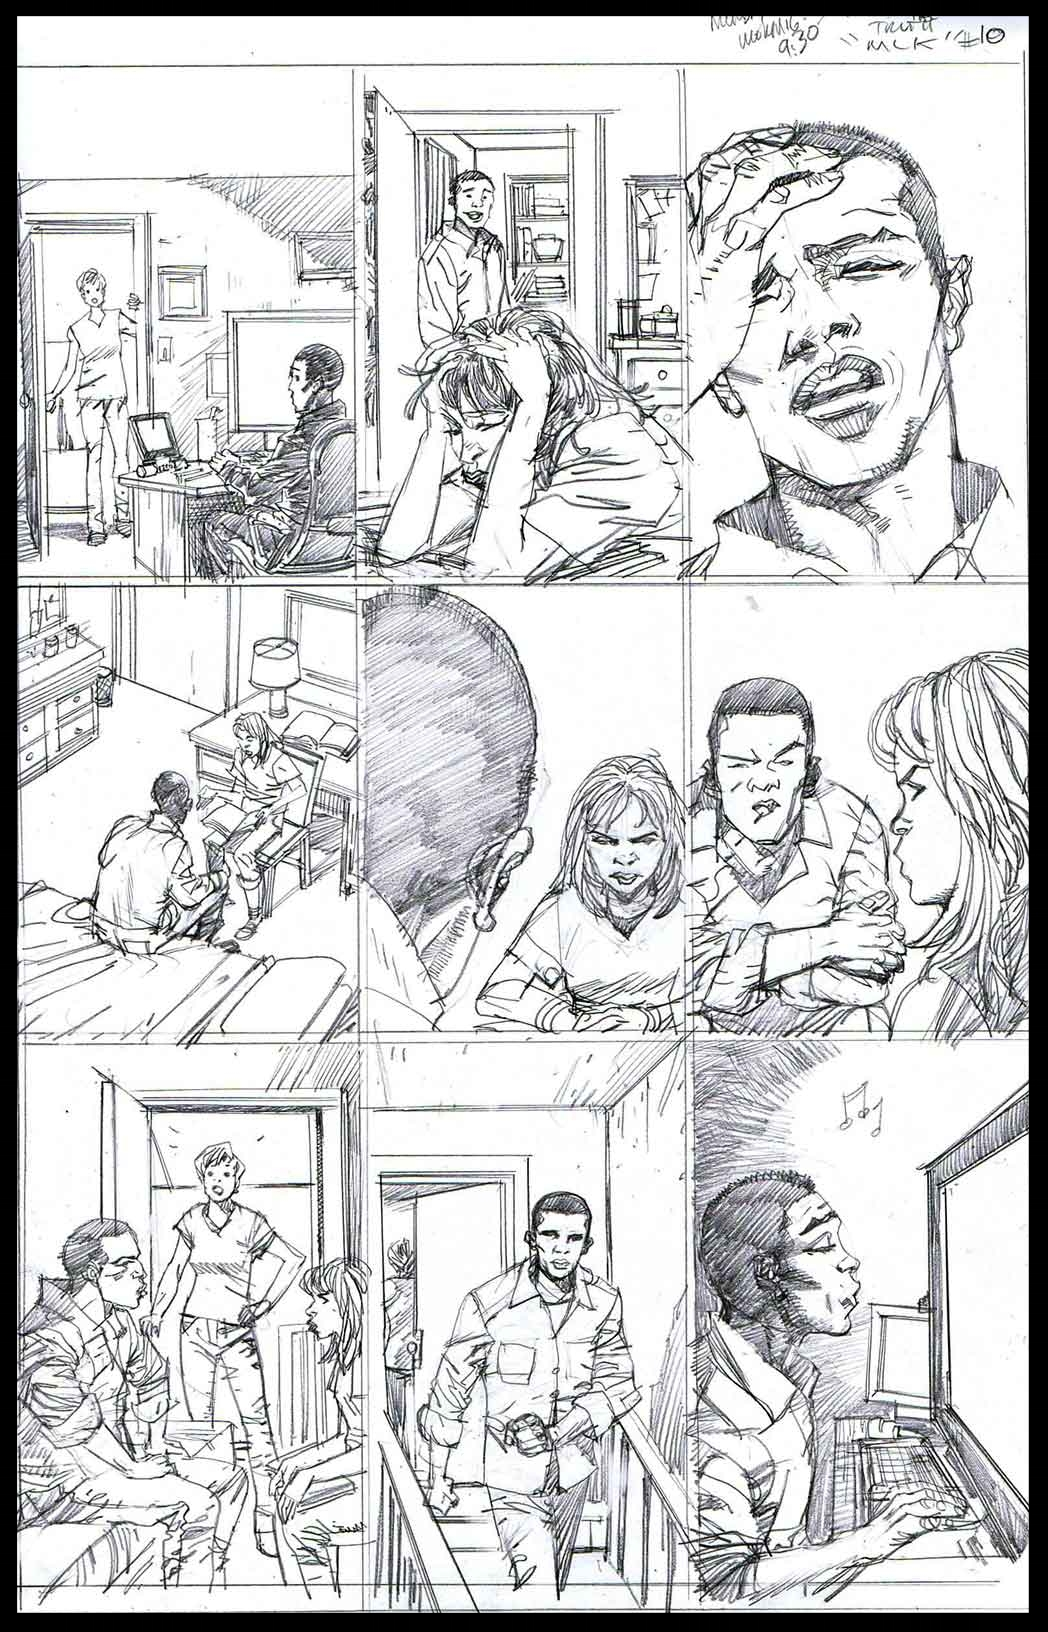 You Can't Handle The Truth #10 - Monthly Strip for Ebony - Pencils